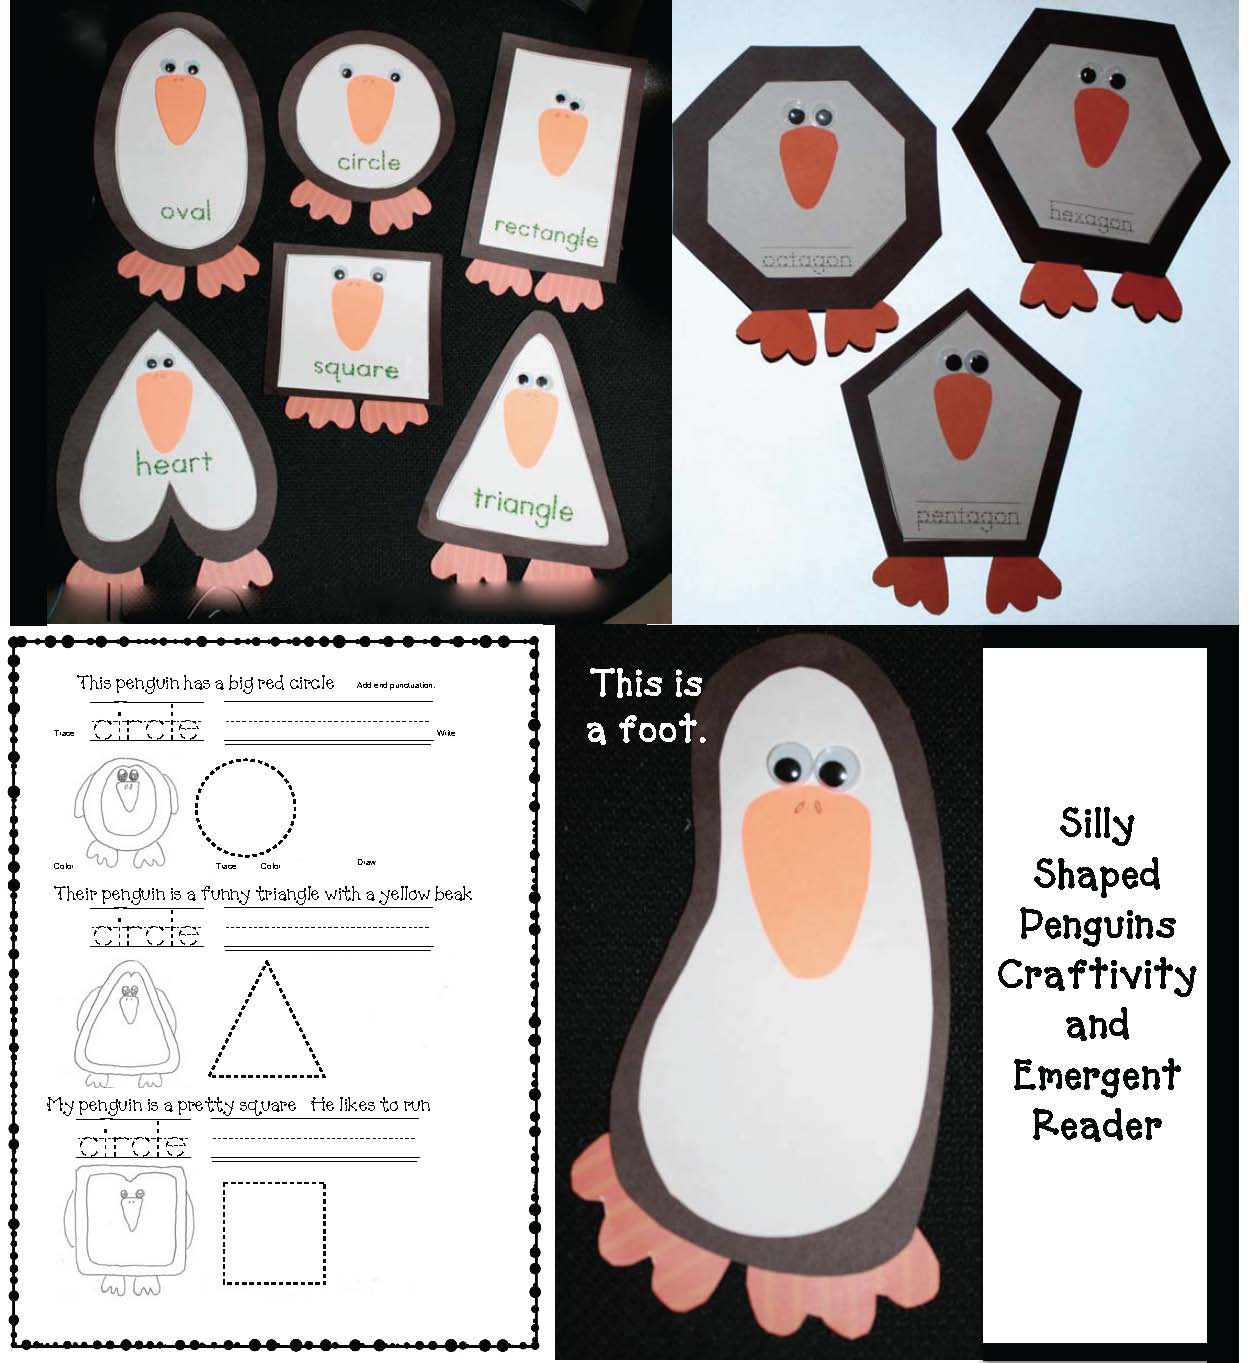 silly shaped penguins, penguin activities, penguin crafts, emergent readers, Dolch word practice, 2D shapes, 2D shape booklet, 2D shape emergent reader, 2D shape activities, 2D shape games